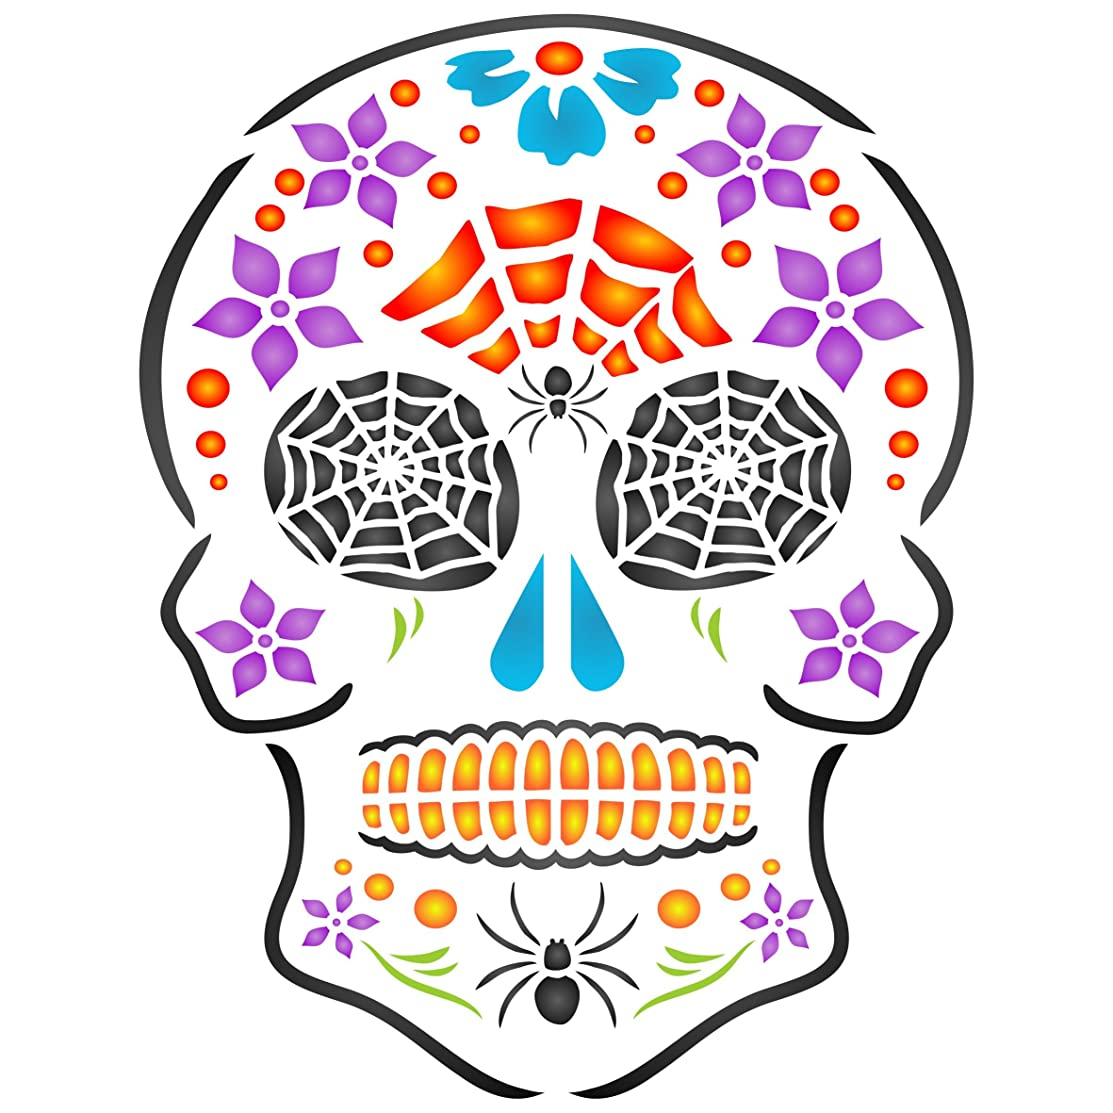 "Halloween Sugar Skull Stencil - (Size 6.5""w x 8.5""h) Reusable Wall Stencils for Painting - Day of The Dead Decor Ideas - Use on Walls, Floors, Fabrics, Glass, Wood, and More…"